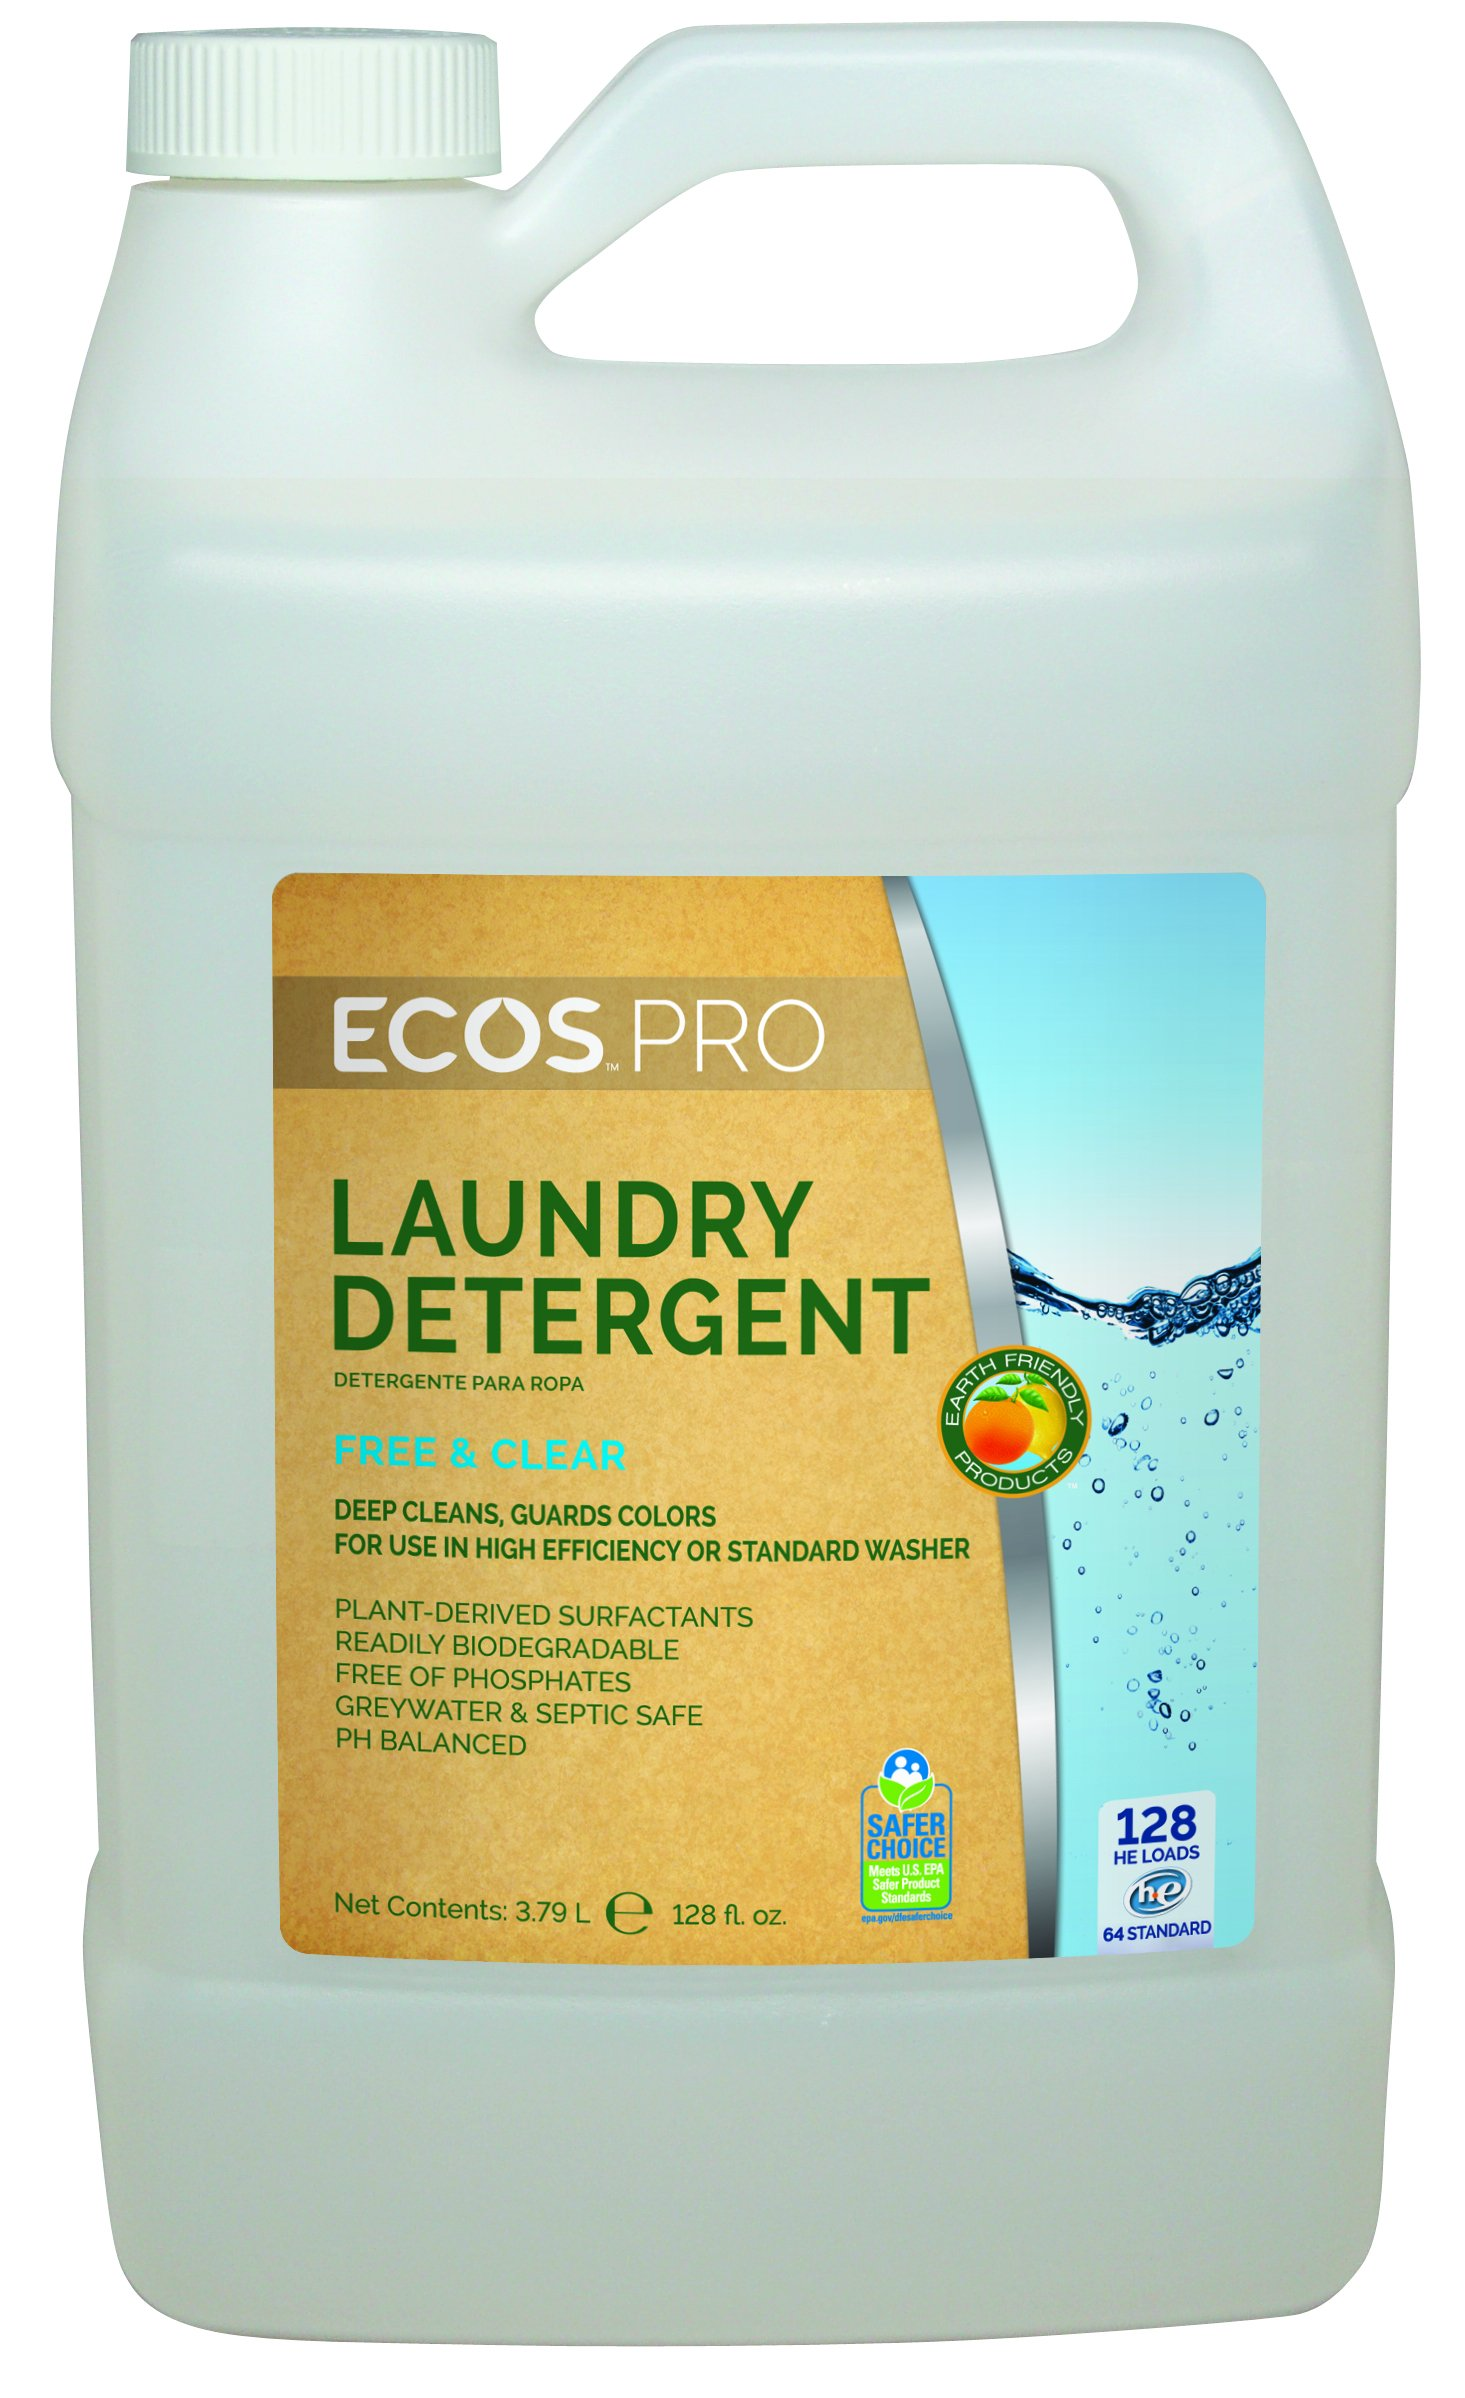 Earth Friendly Products Proline PL9764/04 ECOS Free and Clear Liquid Laundry and Microfiber Detergent, 1 gallon Bottles (Case of 4) by Earth Friendly Proline